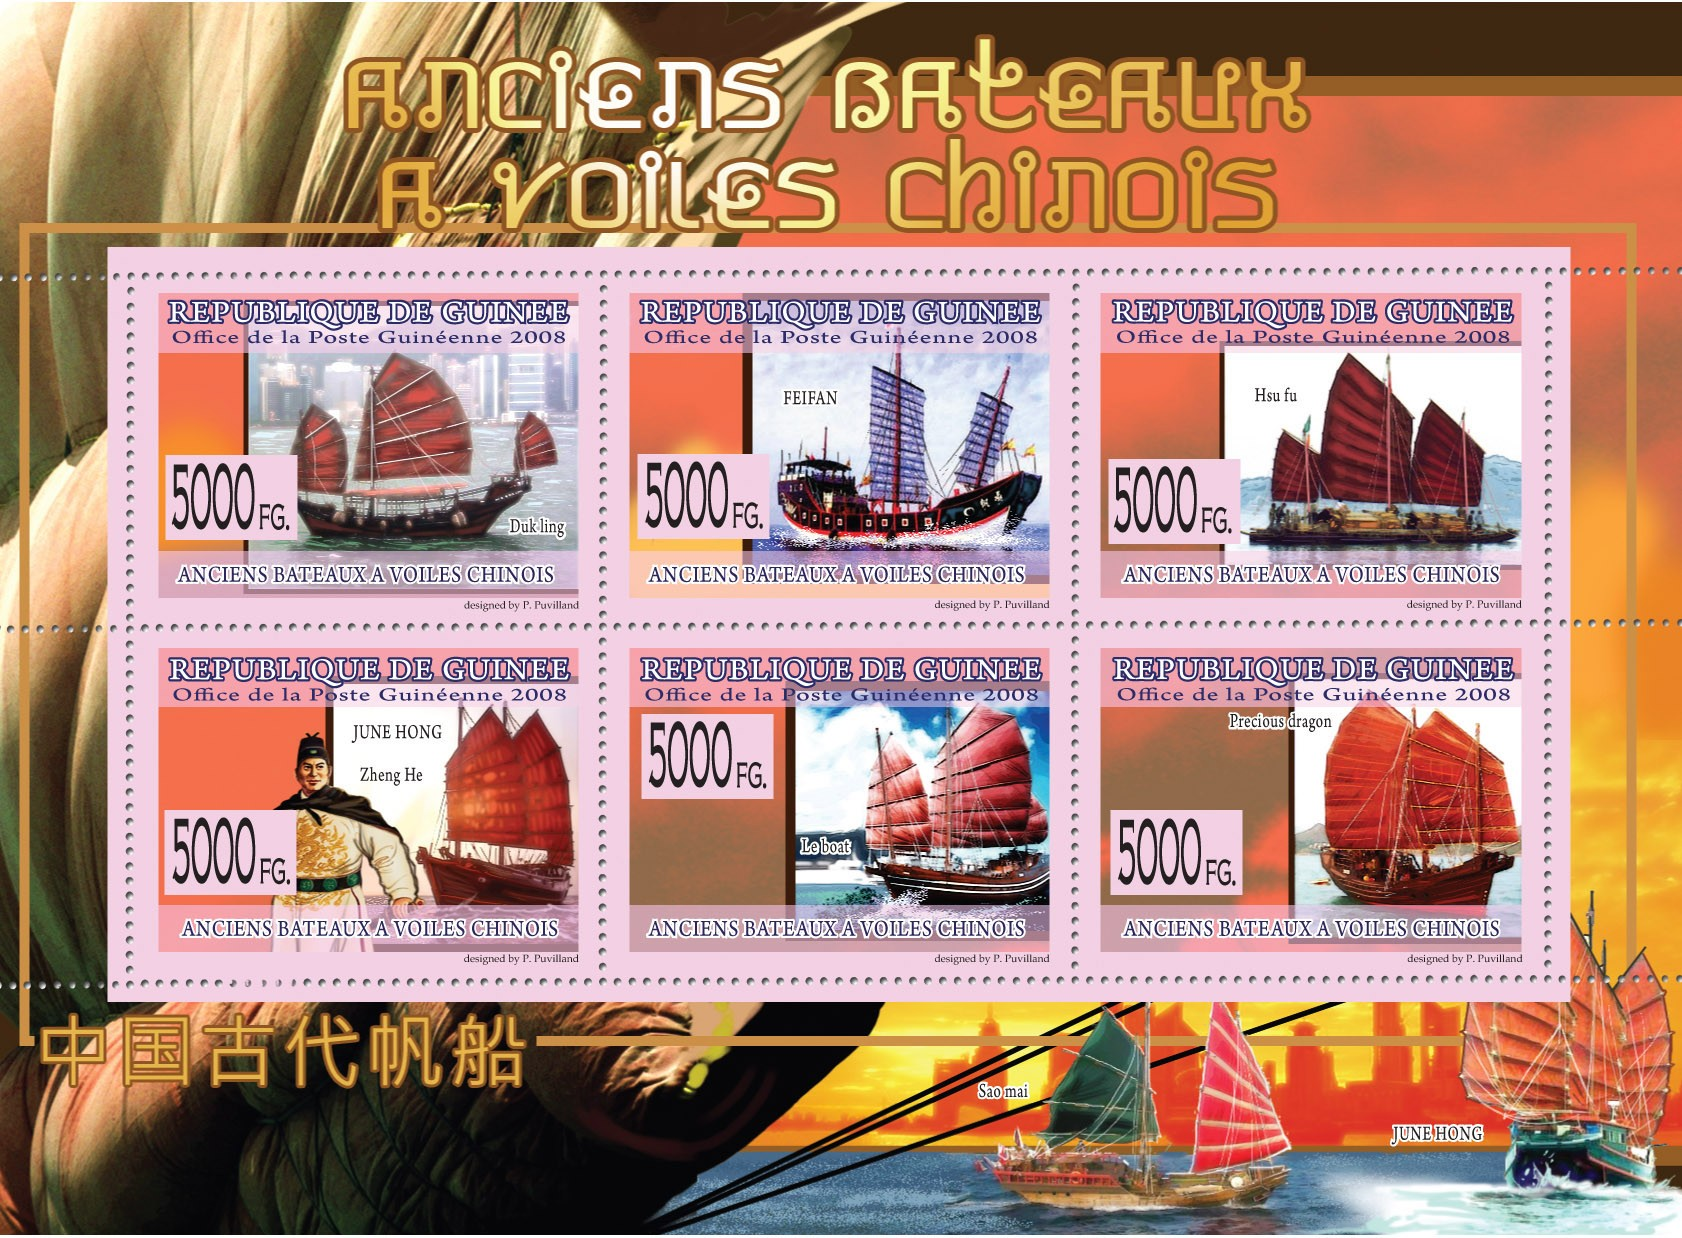 OLD CHINESE SAILING BOATS Duk Ling?��, Feifan?��, Hsu Fu?��, June Hong?��, Le Boat?��, Precious Dragon?�� - Issue of Guinée postage stamps